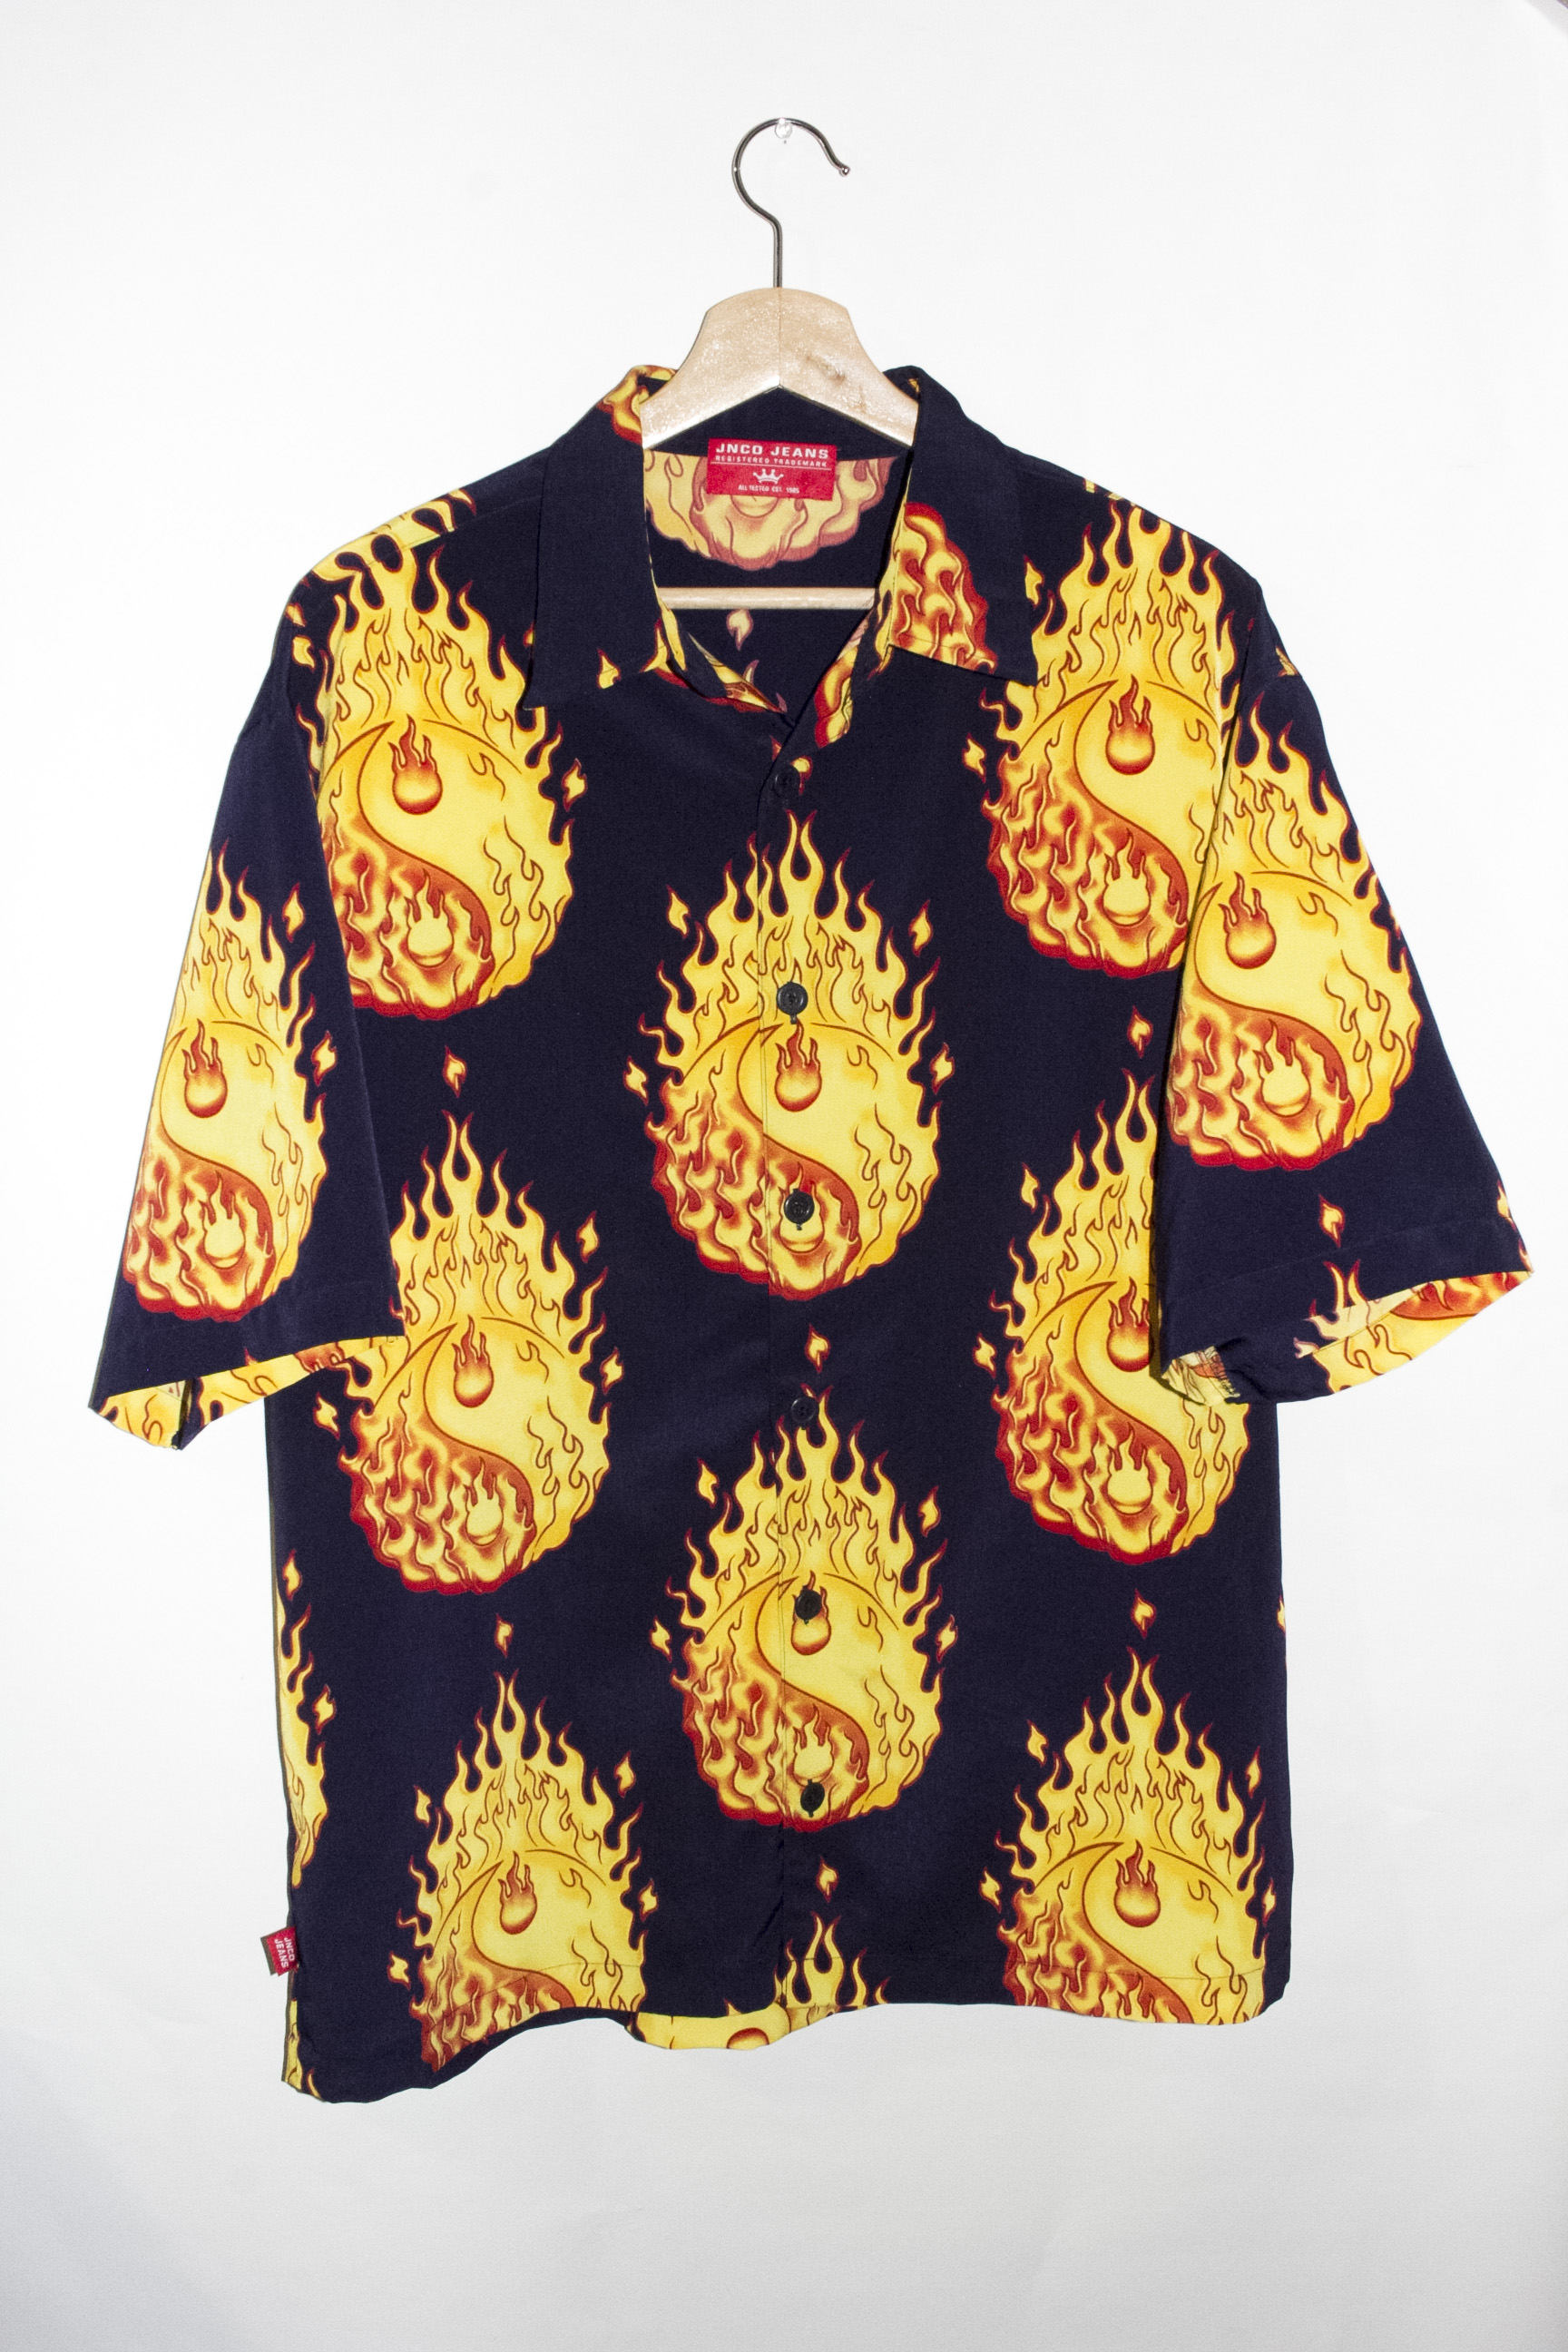 Vintage Yin Yang Flames Button Up Shirt from DREGS Shop